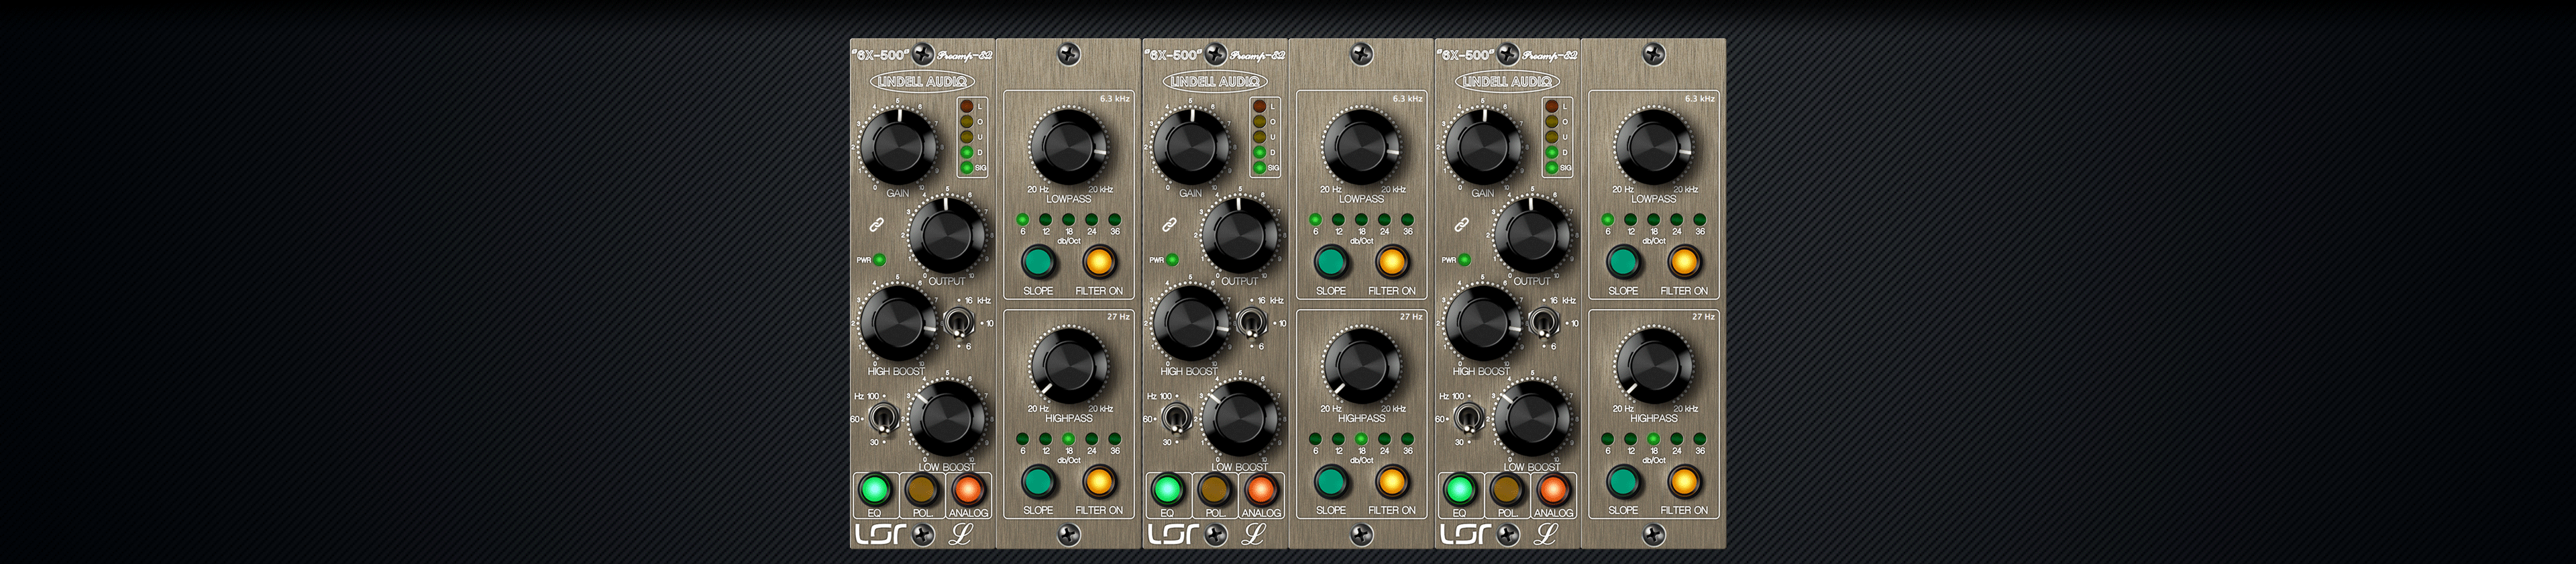 lindell audio plugins review